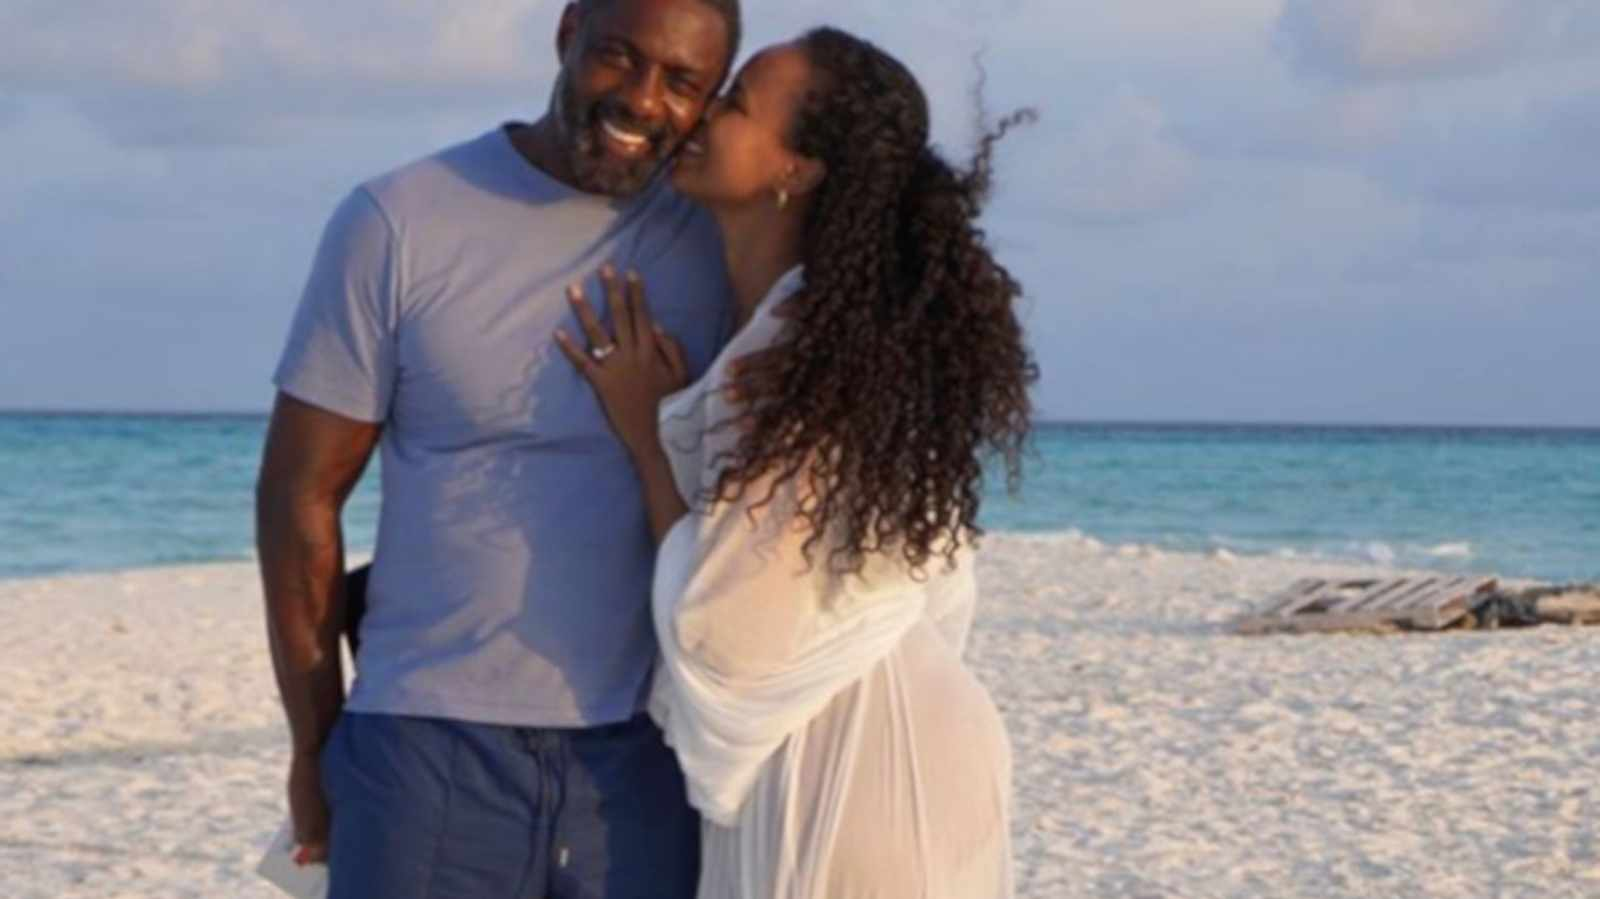 Inside the Luxurious Maldives Villa Where Idris Elba Spent the Holidays